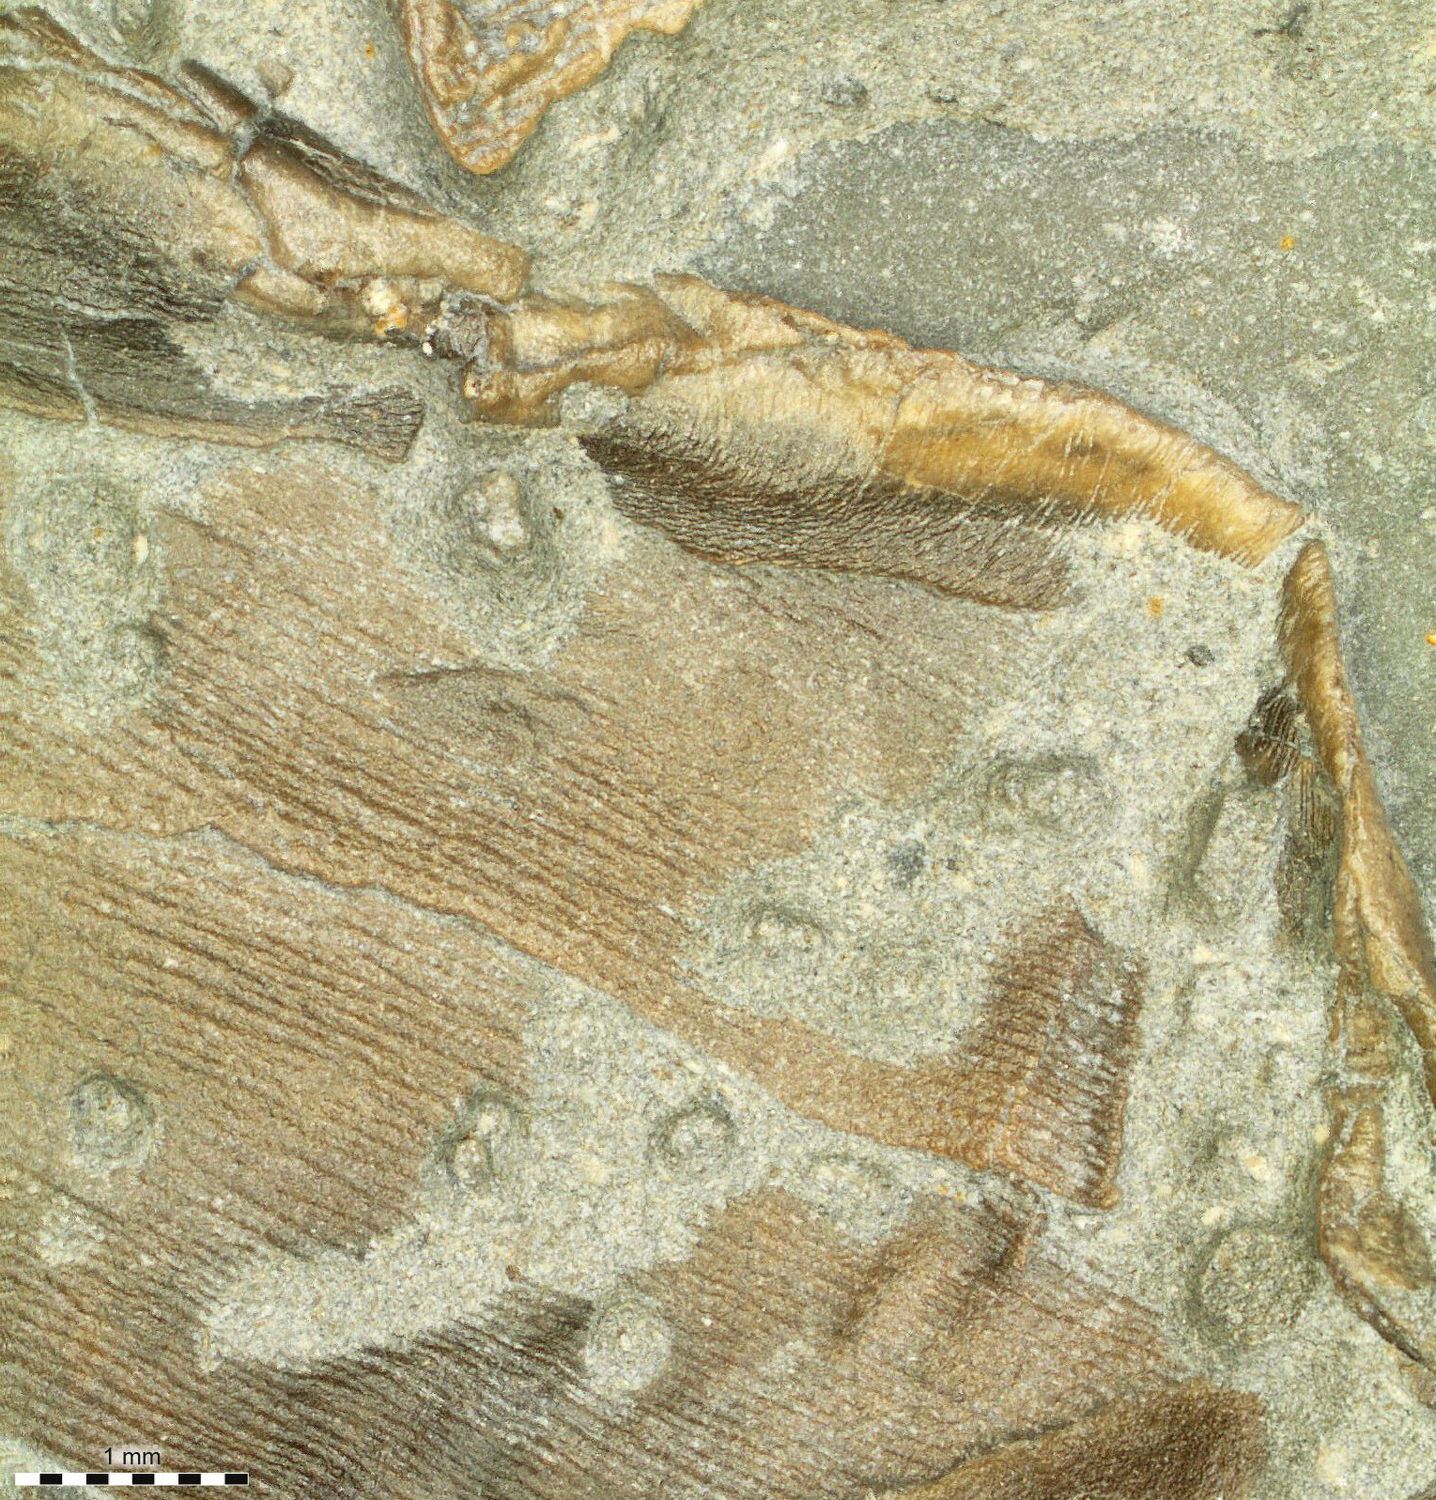 Fossilized skin forming the trailing edge of the right pelvic fin.